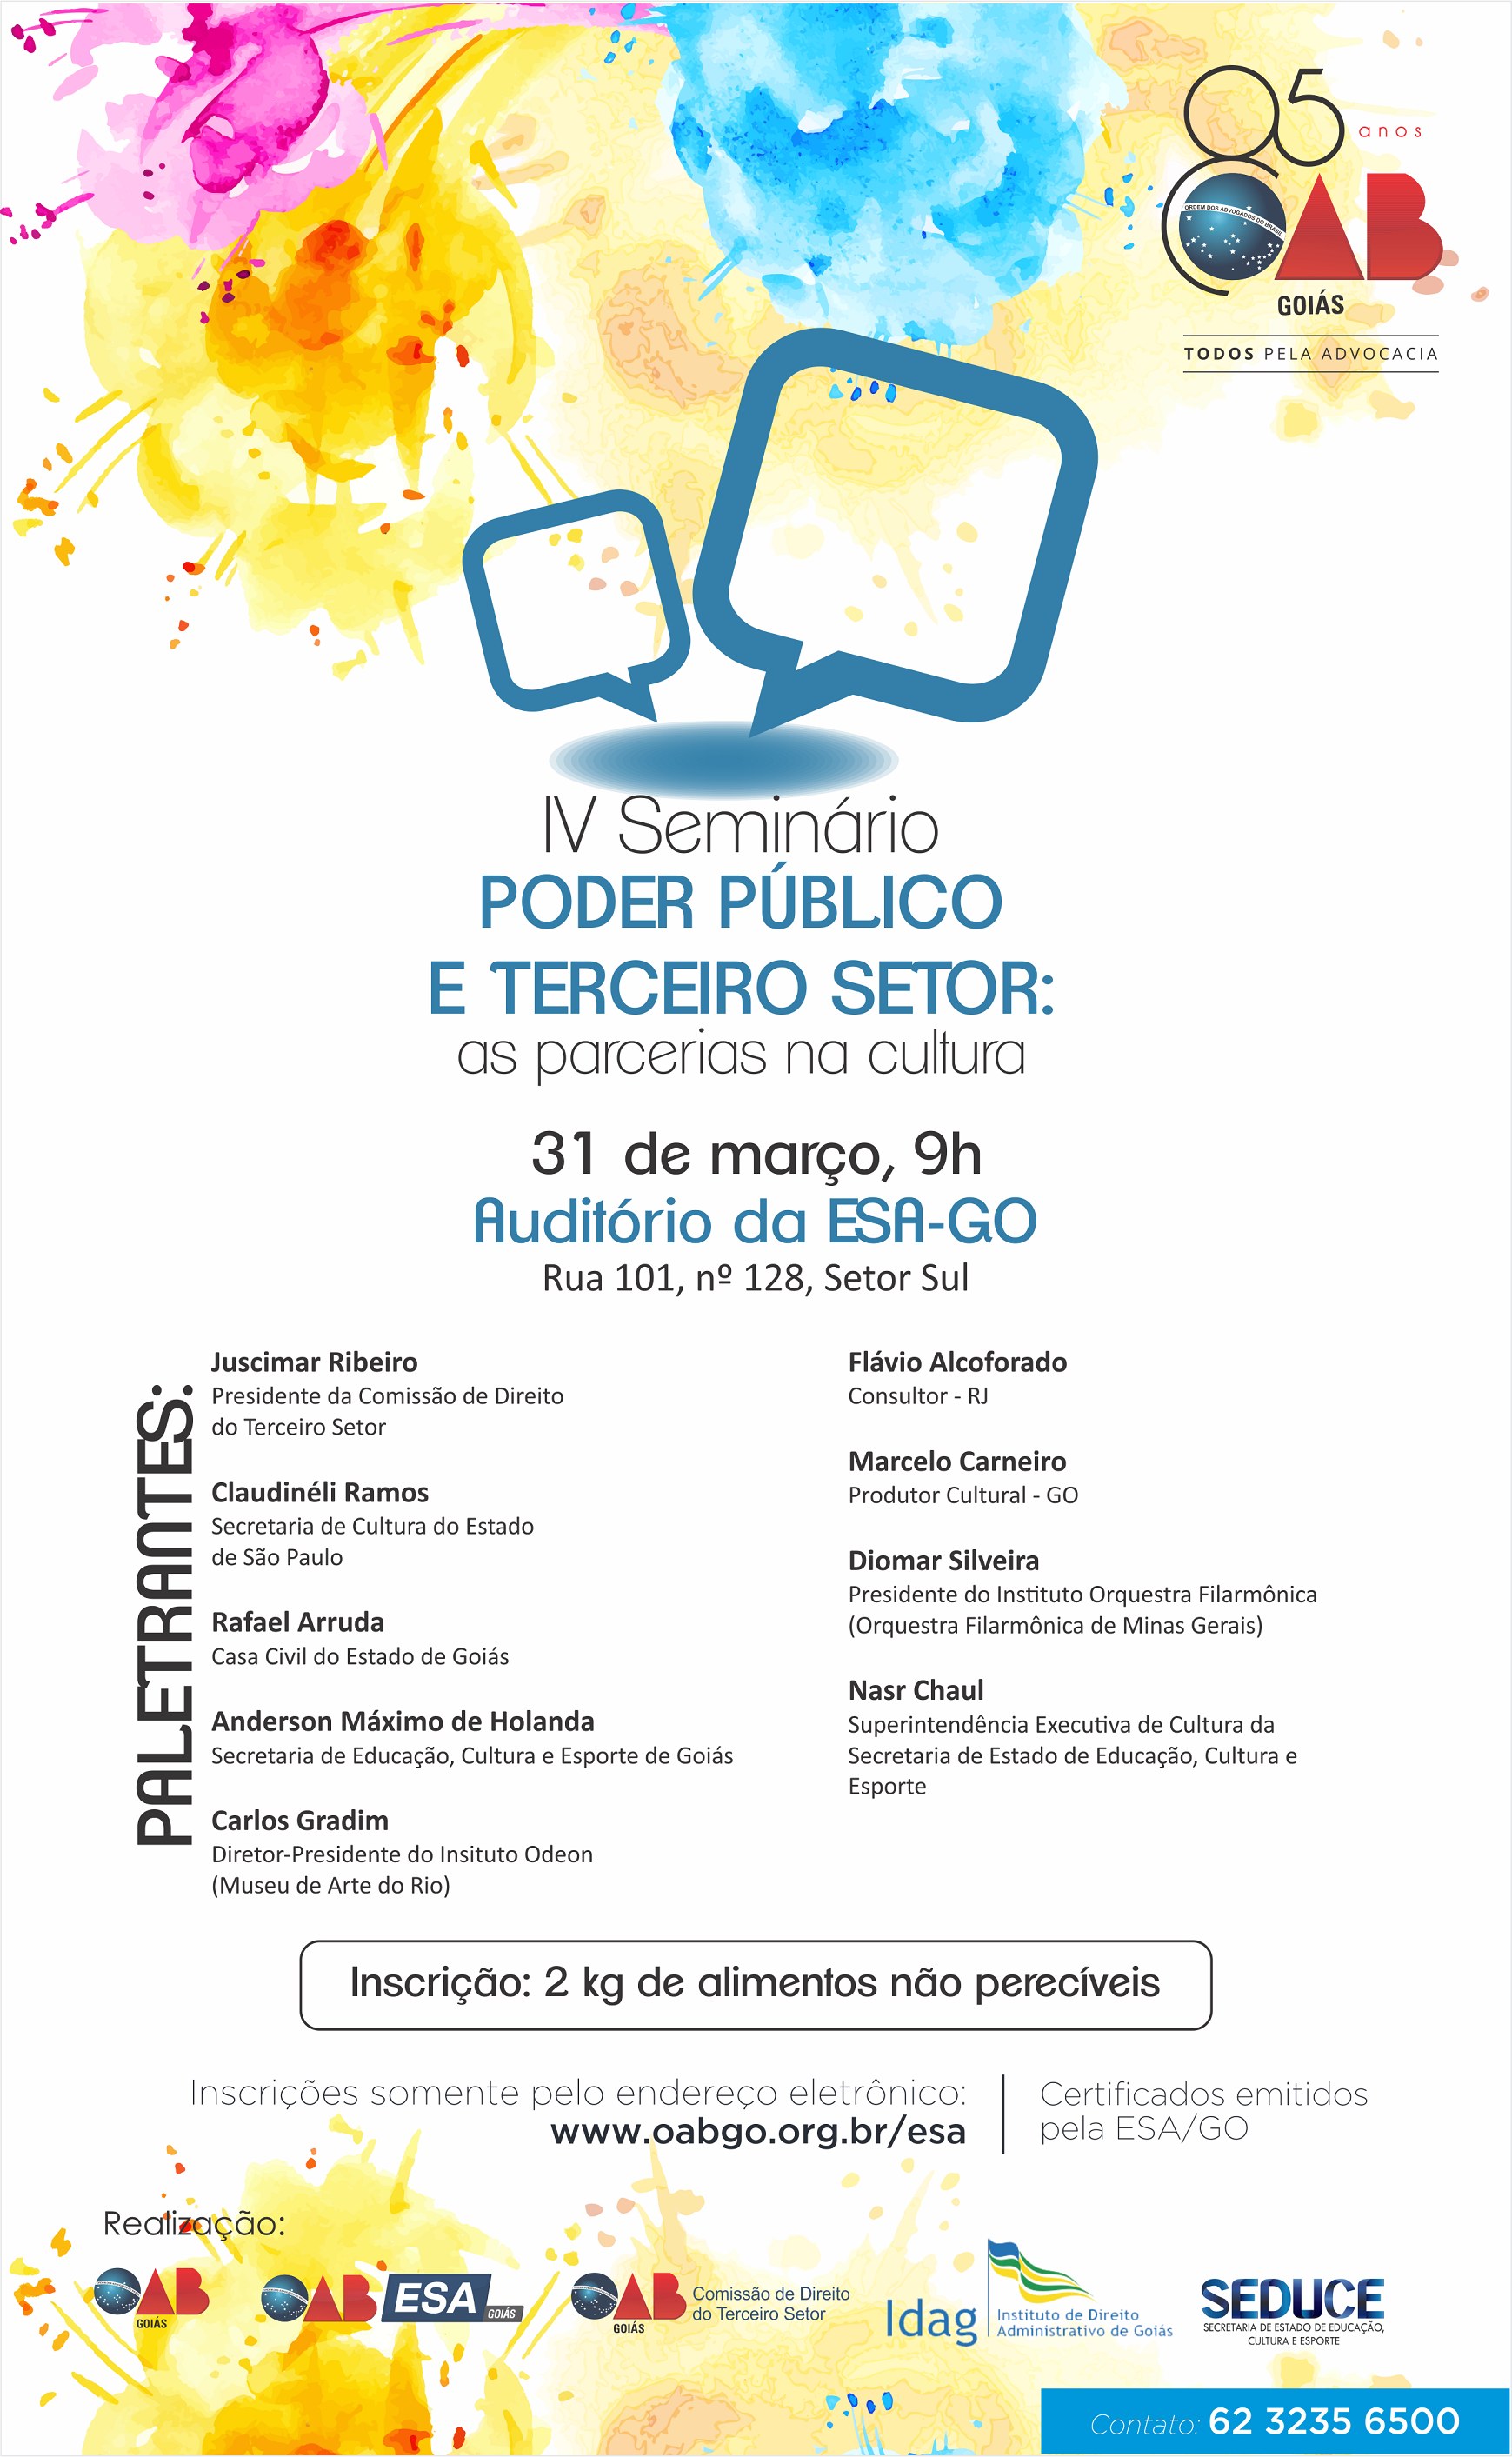 http://www.oabgo.org.br/arquivos/31-5141610.png